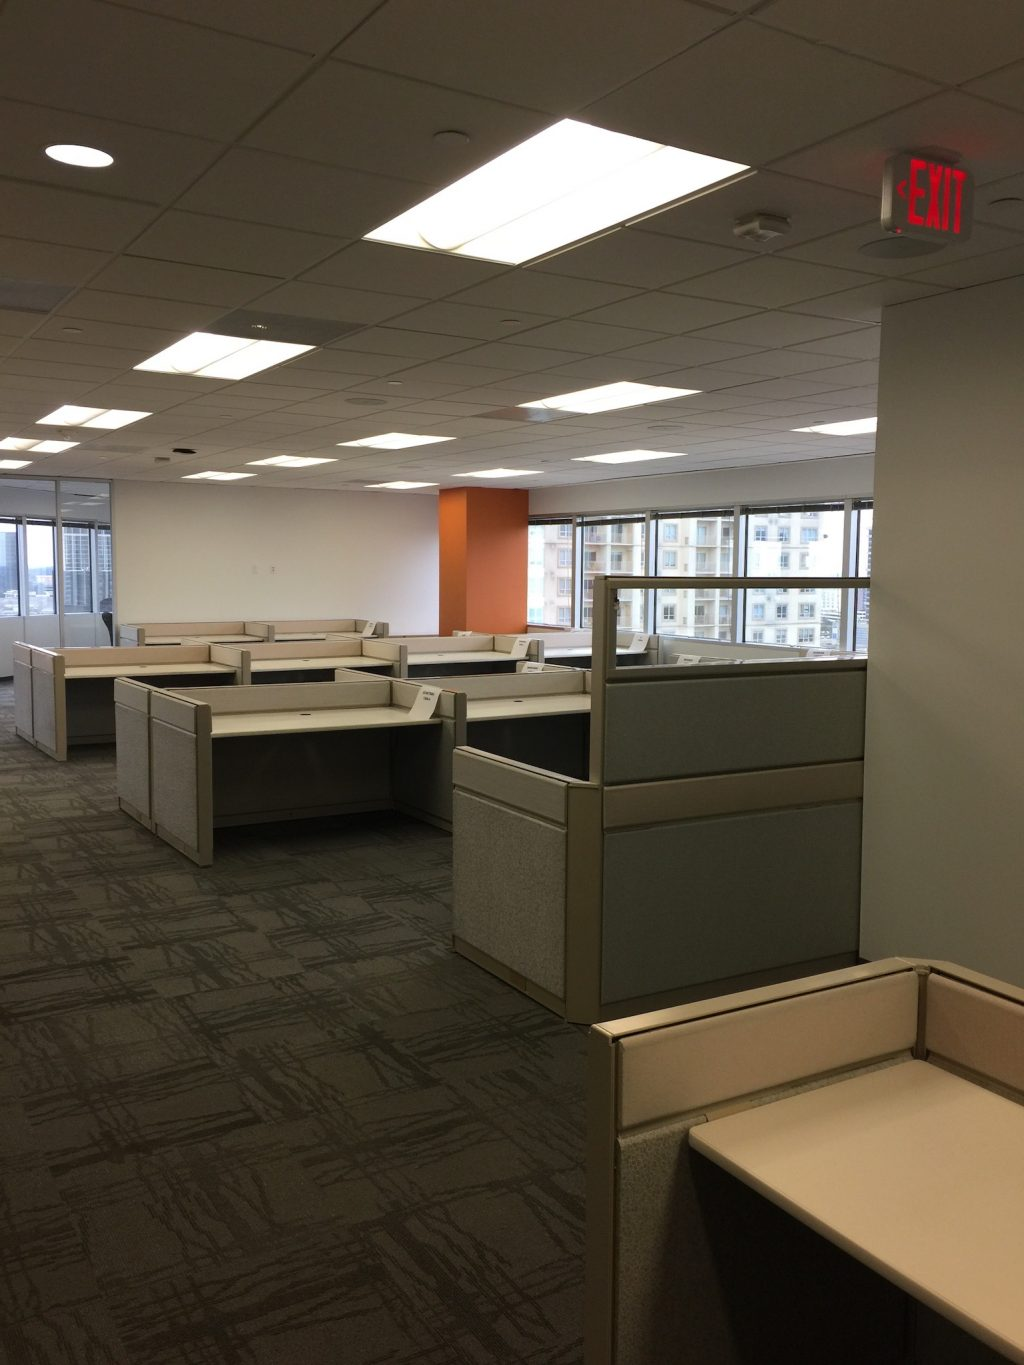 building office furniture. office furniture is of product we carry. please take your time to browse and if any our gallery items peaks interest do not hesitate contact building r